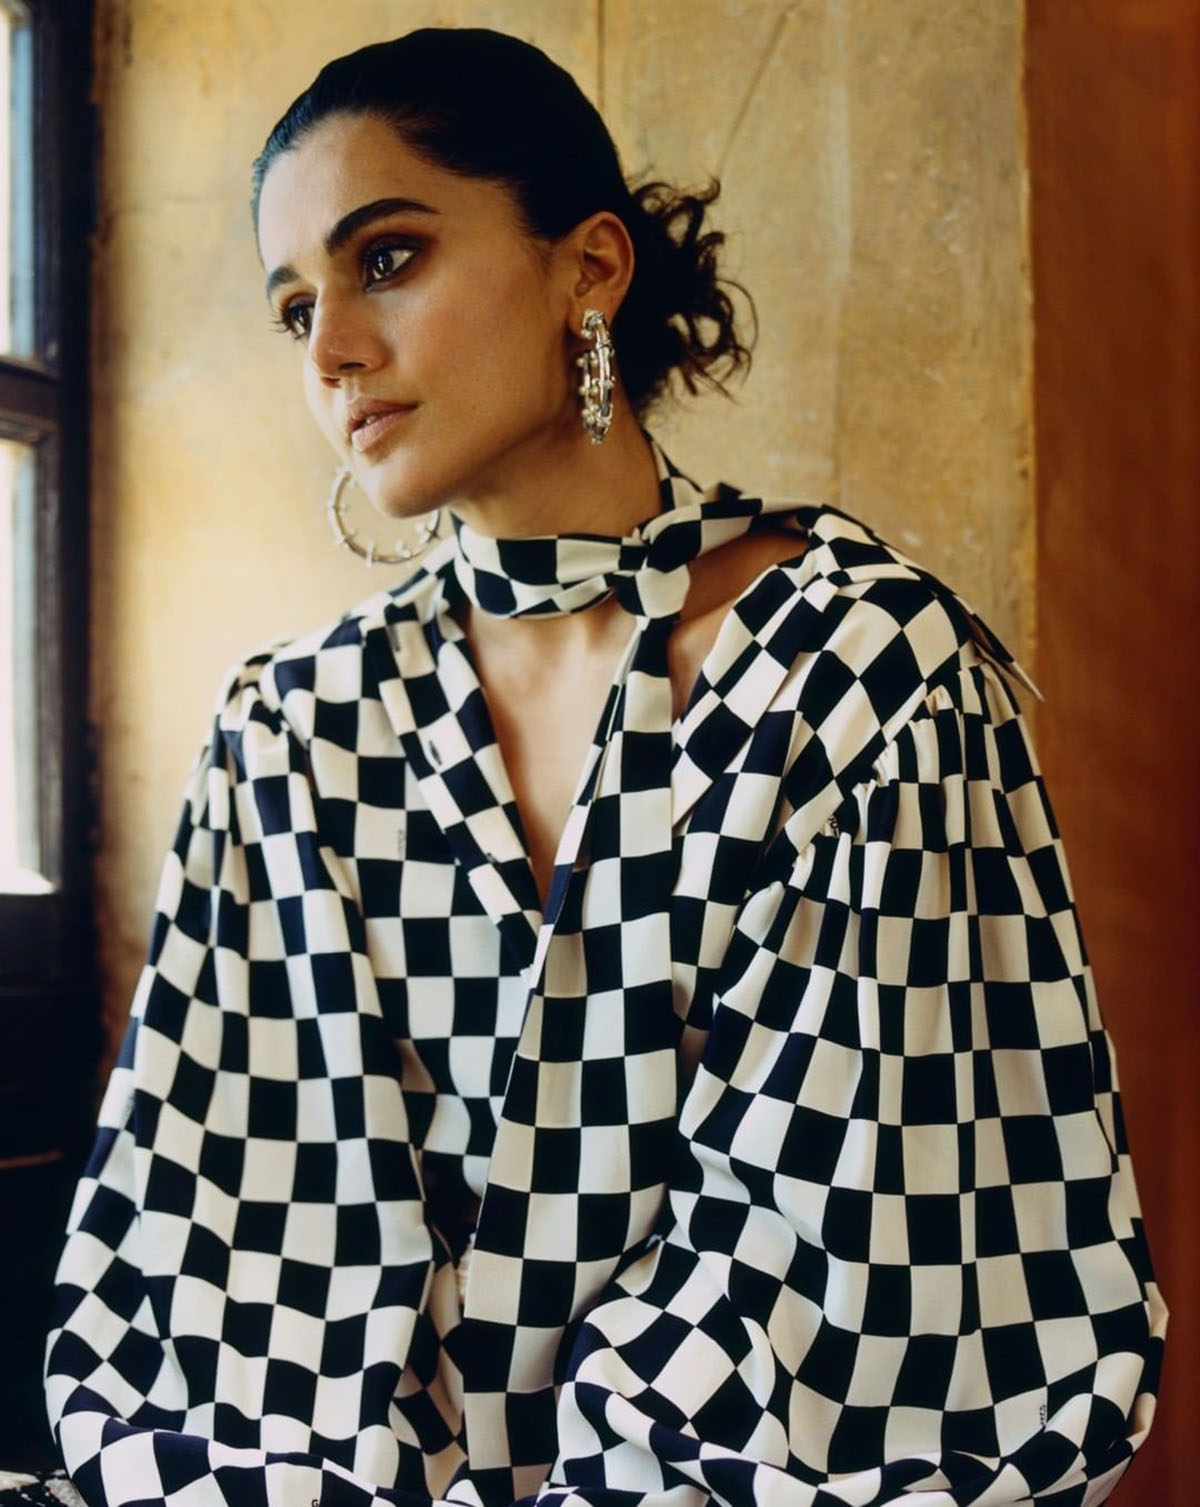 Taapsee Pannu covers Vogue India May June 2021 by Bikramjit Bose